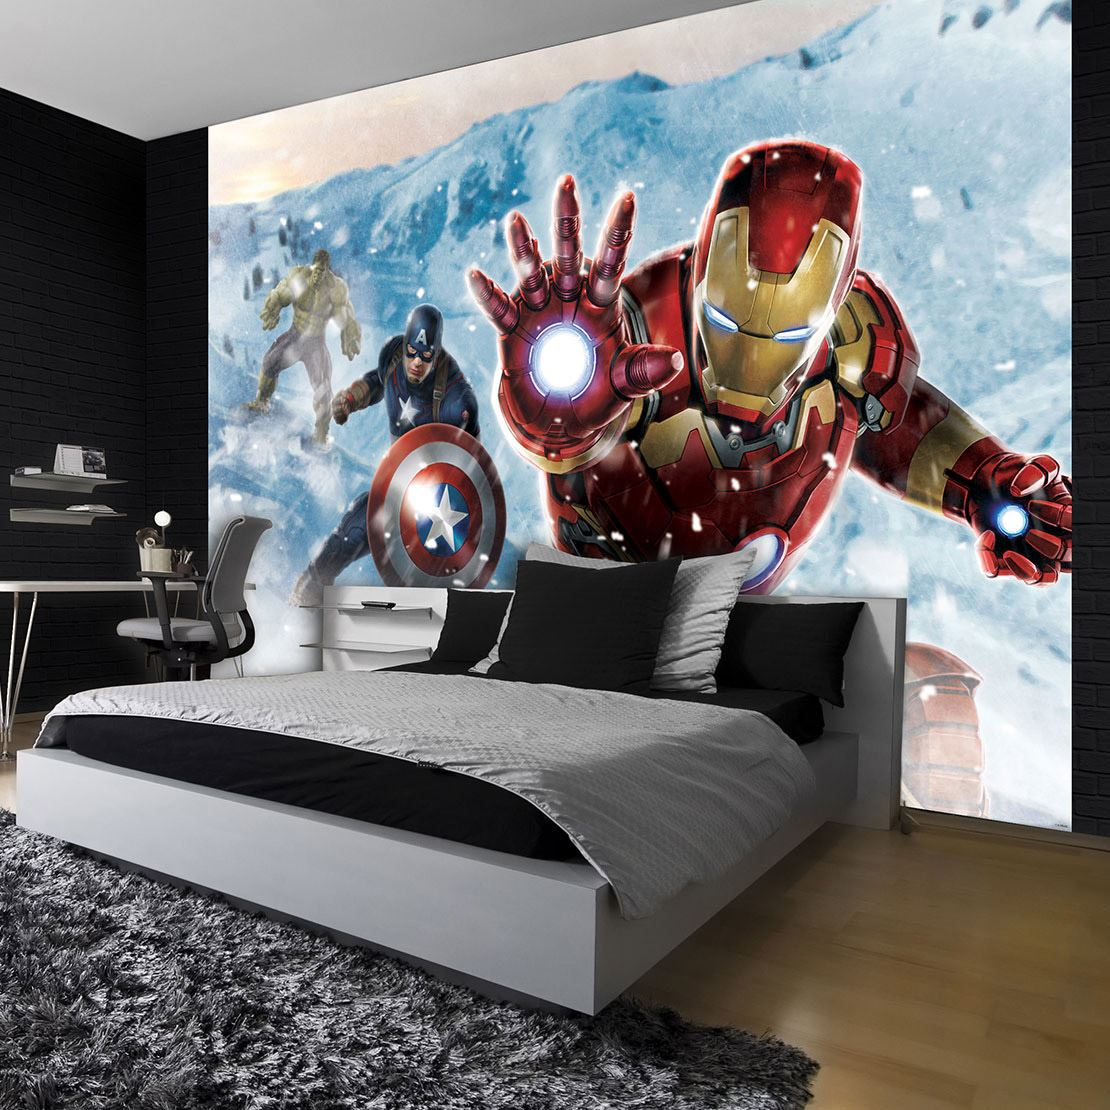 papier peint photo marvel avengers ironman captain america et hulk lesaccessoires. Black Bedroom Furniture Sets. Home Design Ideas